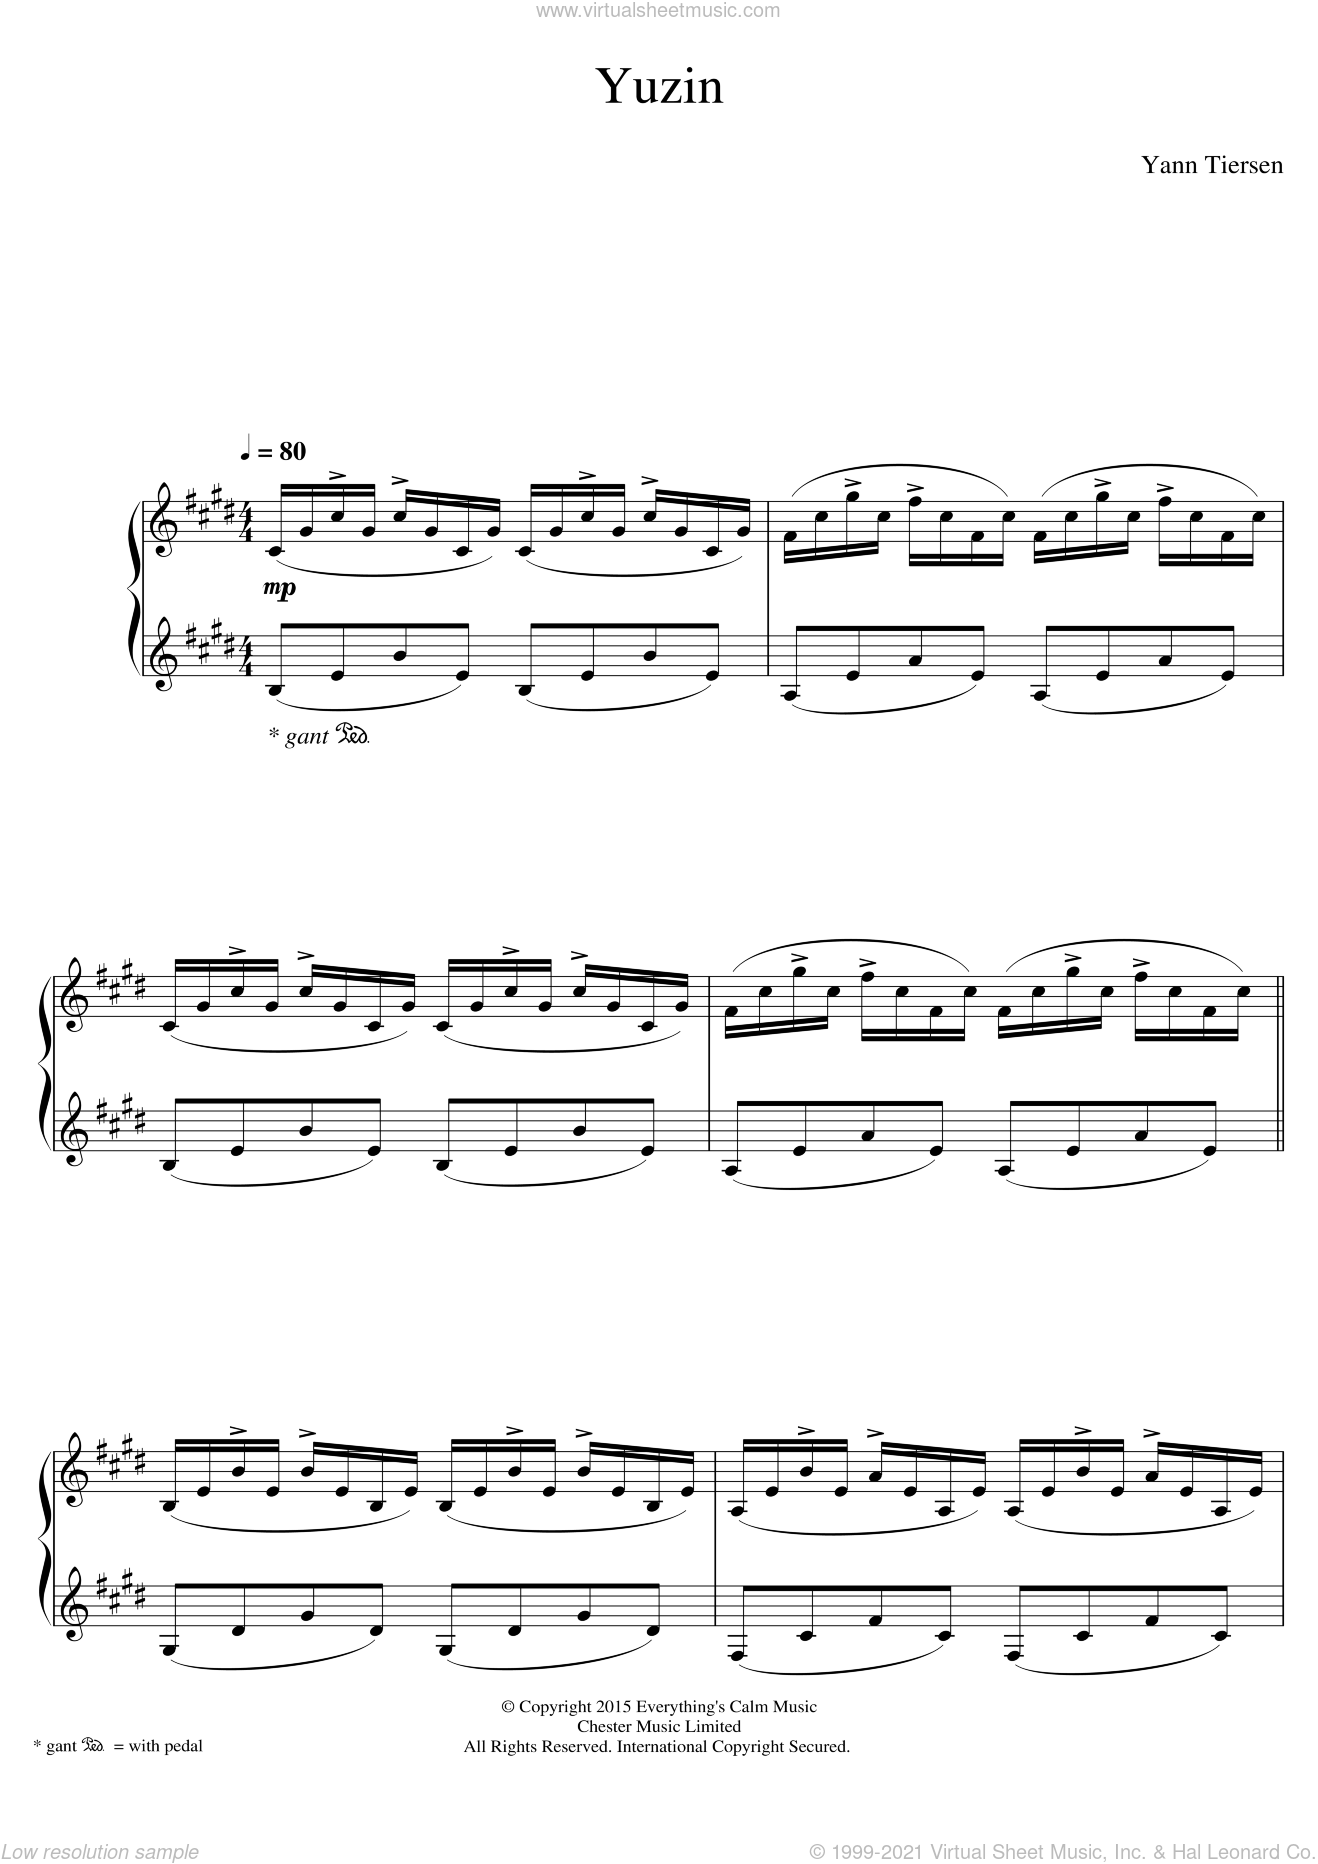 Yuzin sheet music for piano solo by Yann Tiersen, classical score, intermediate skill level